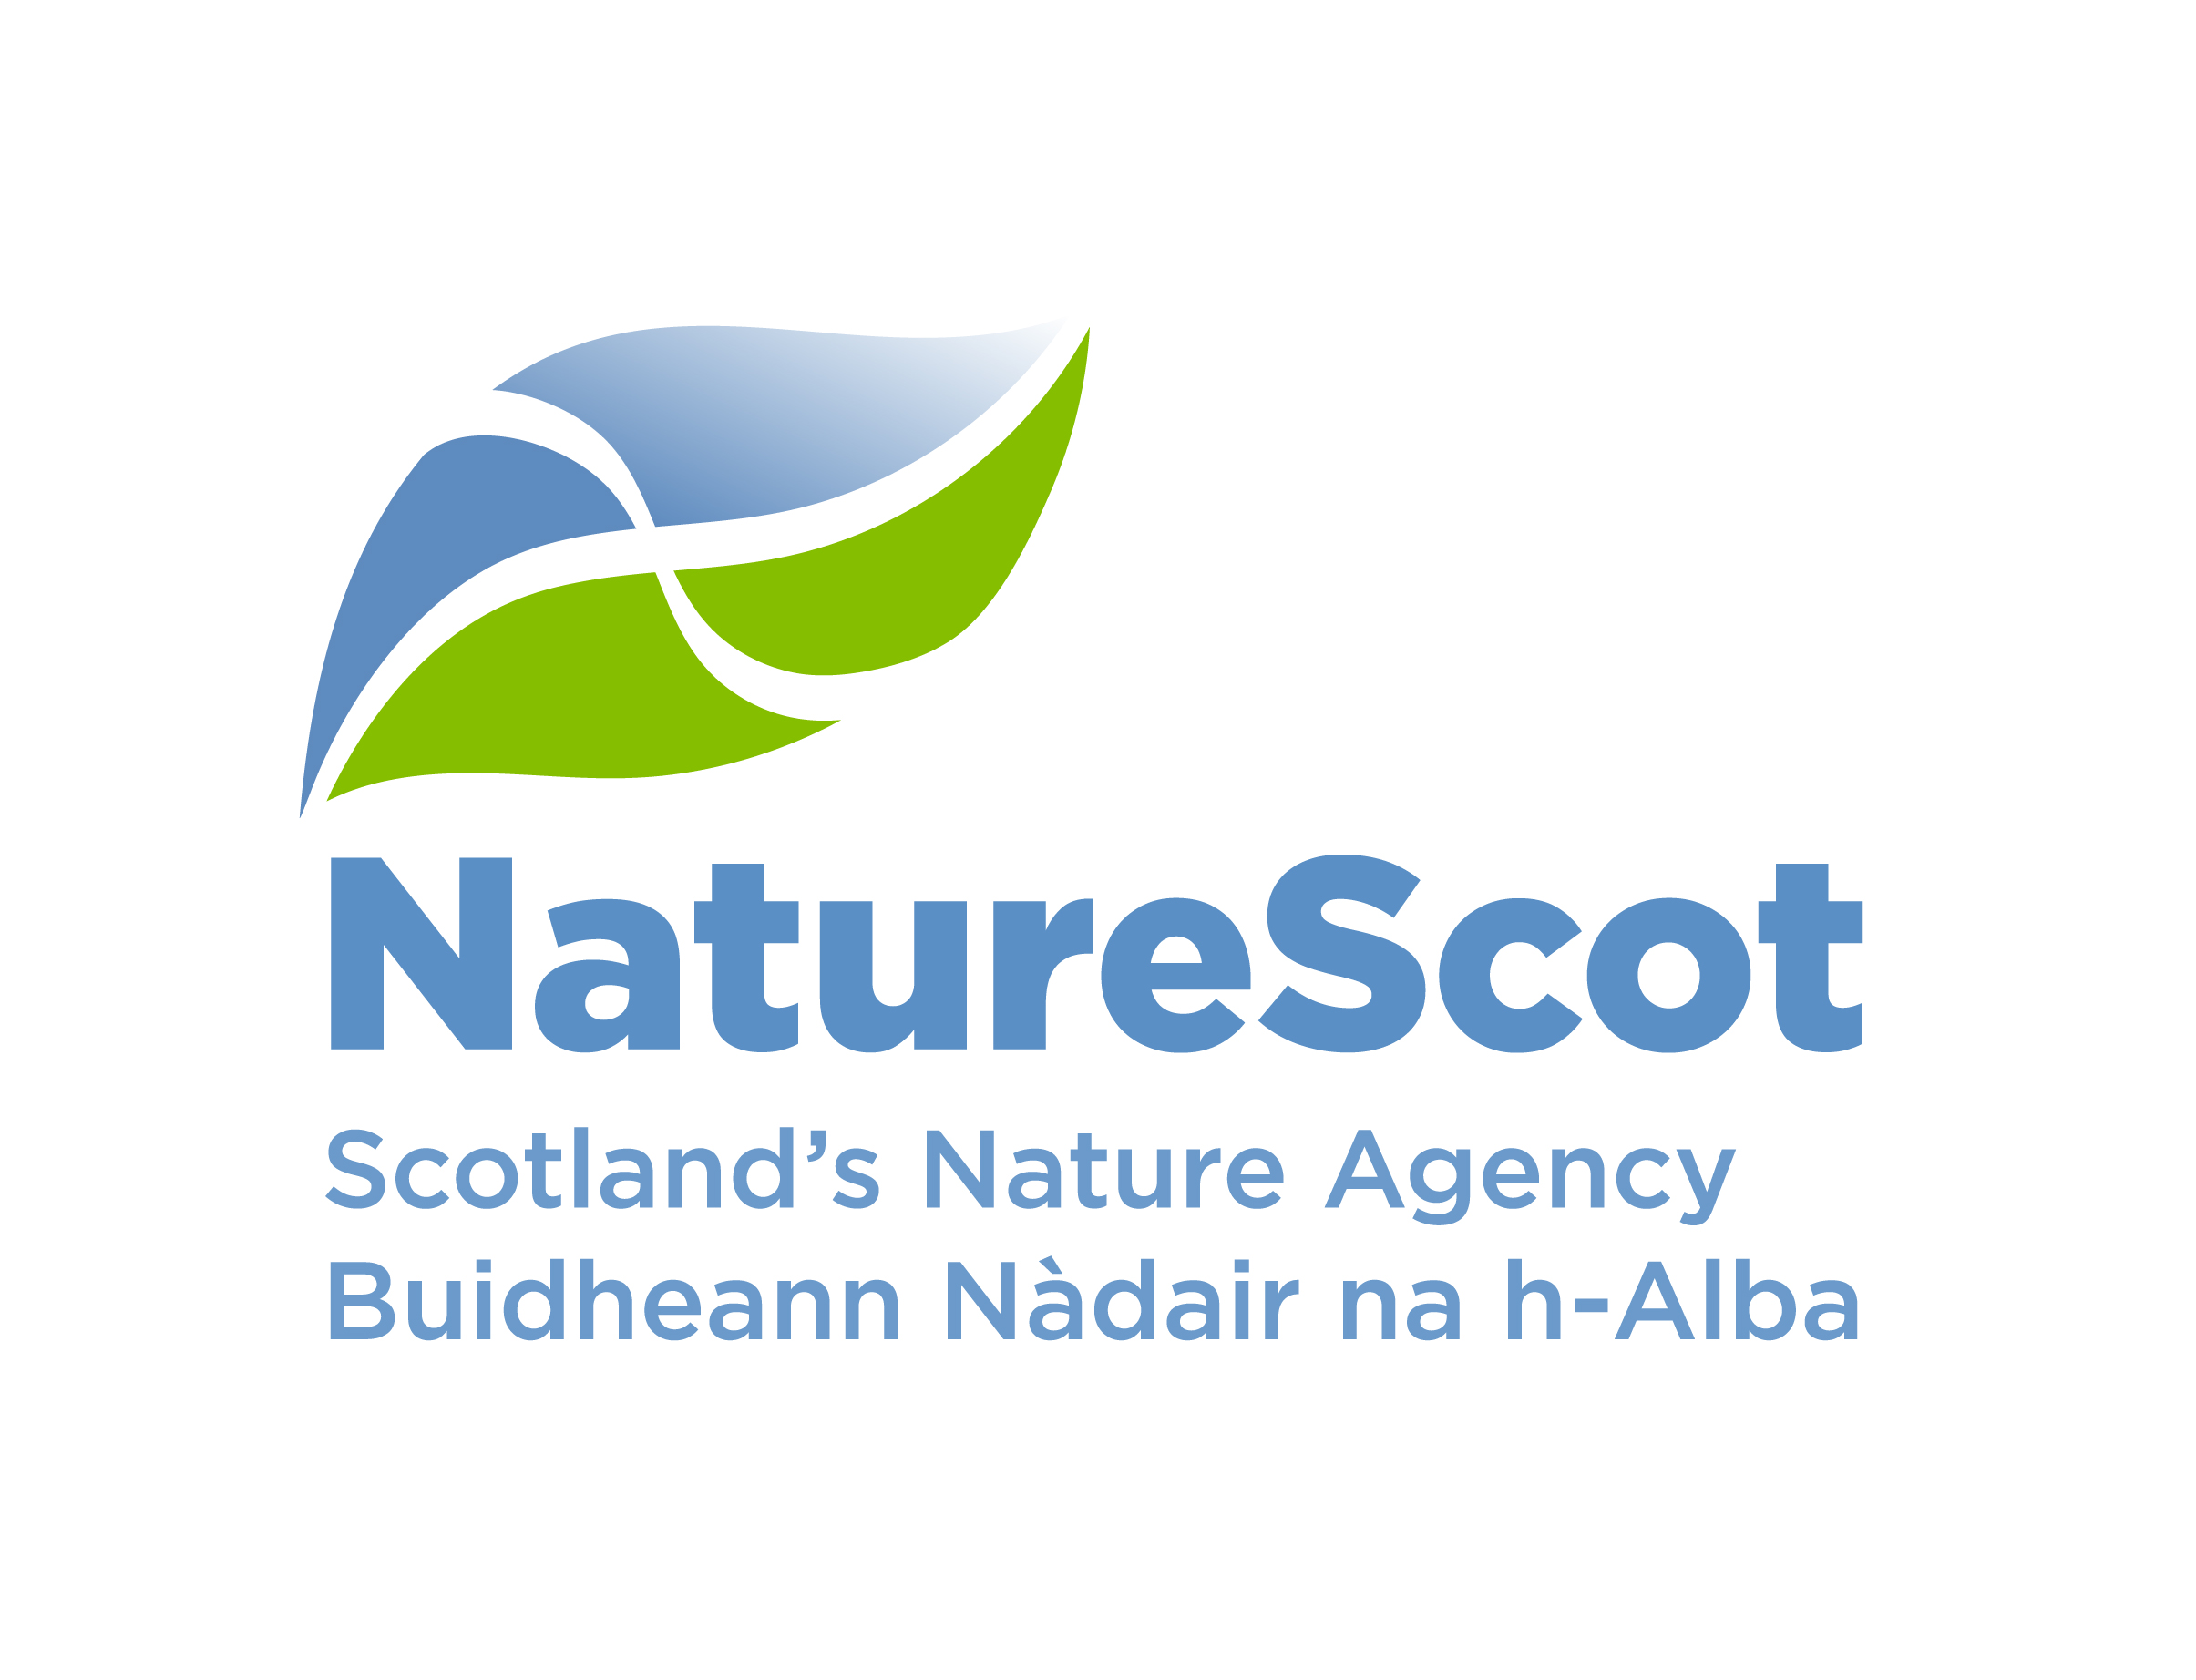 NatureScot colour logo